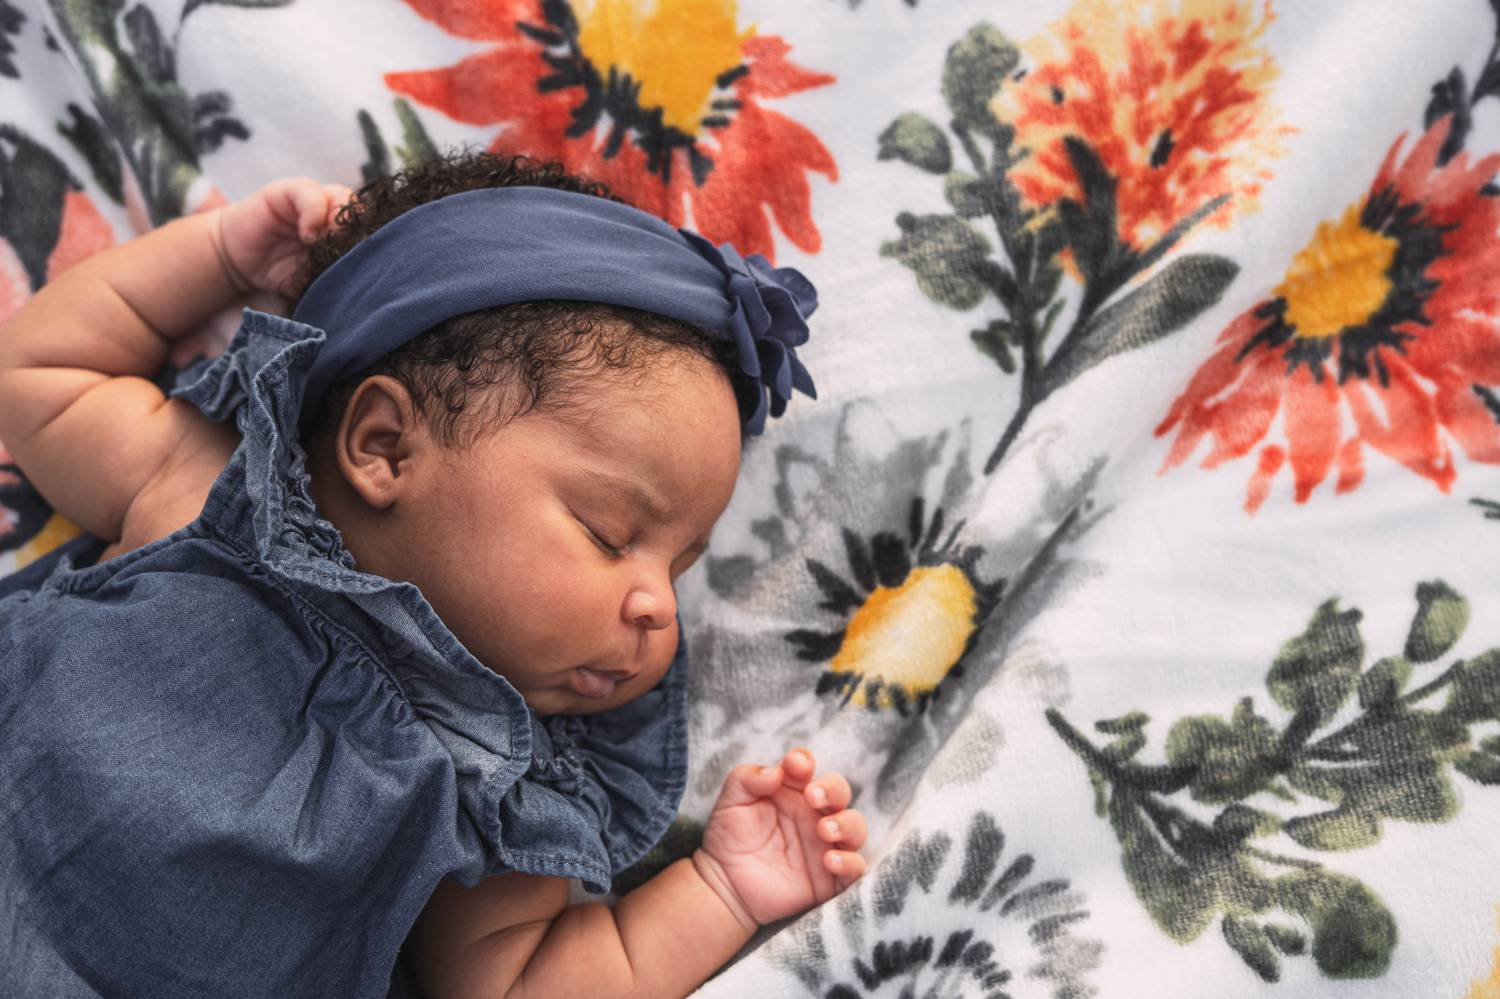 A newborn baby in a ruffled denim dress sleeps soundly on her back atop a colorful quilt.